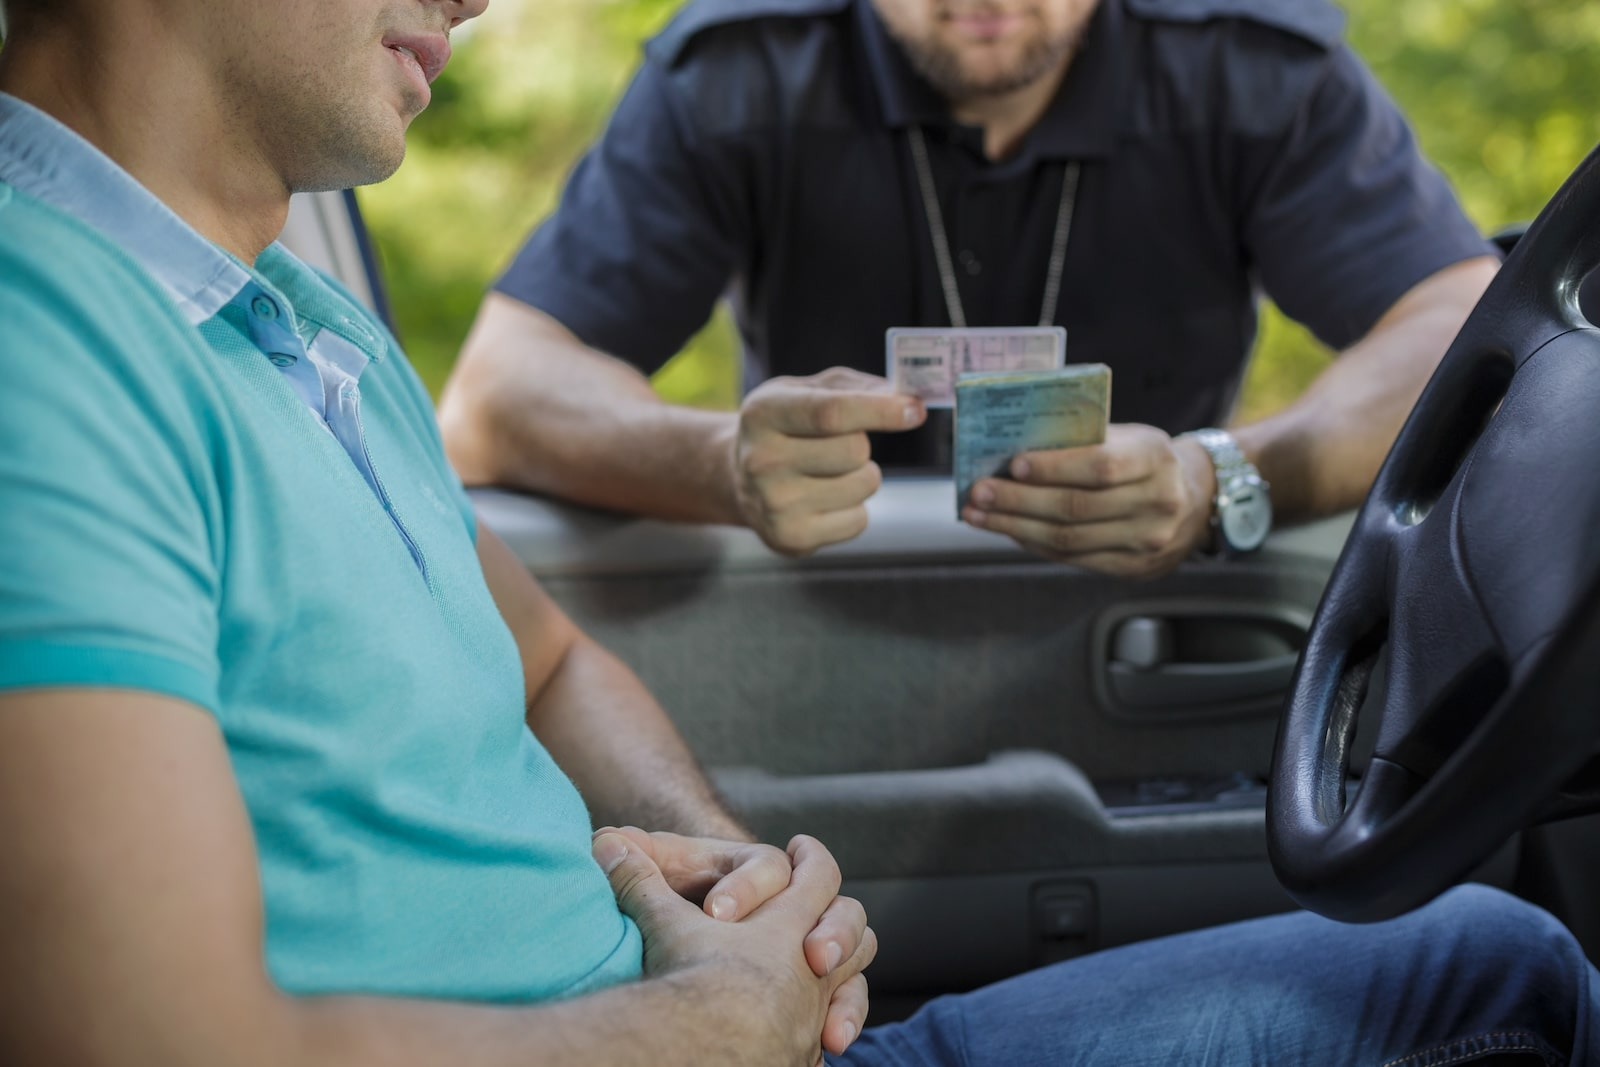 7 Things to Know About Driver's License Points